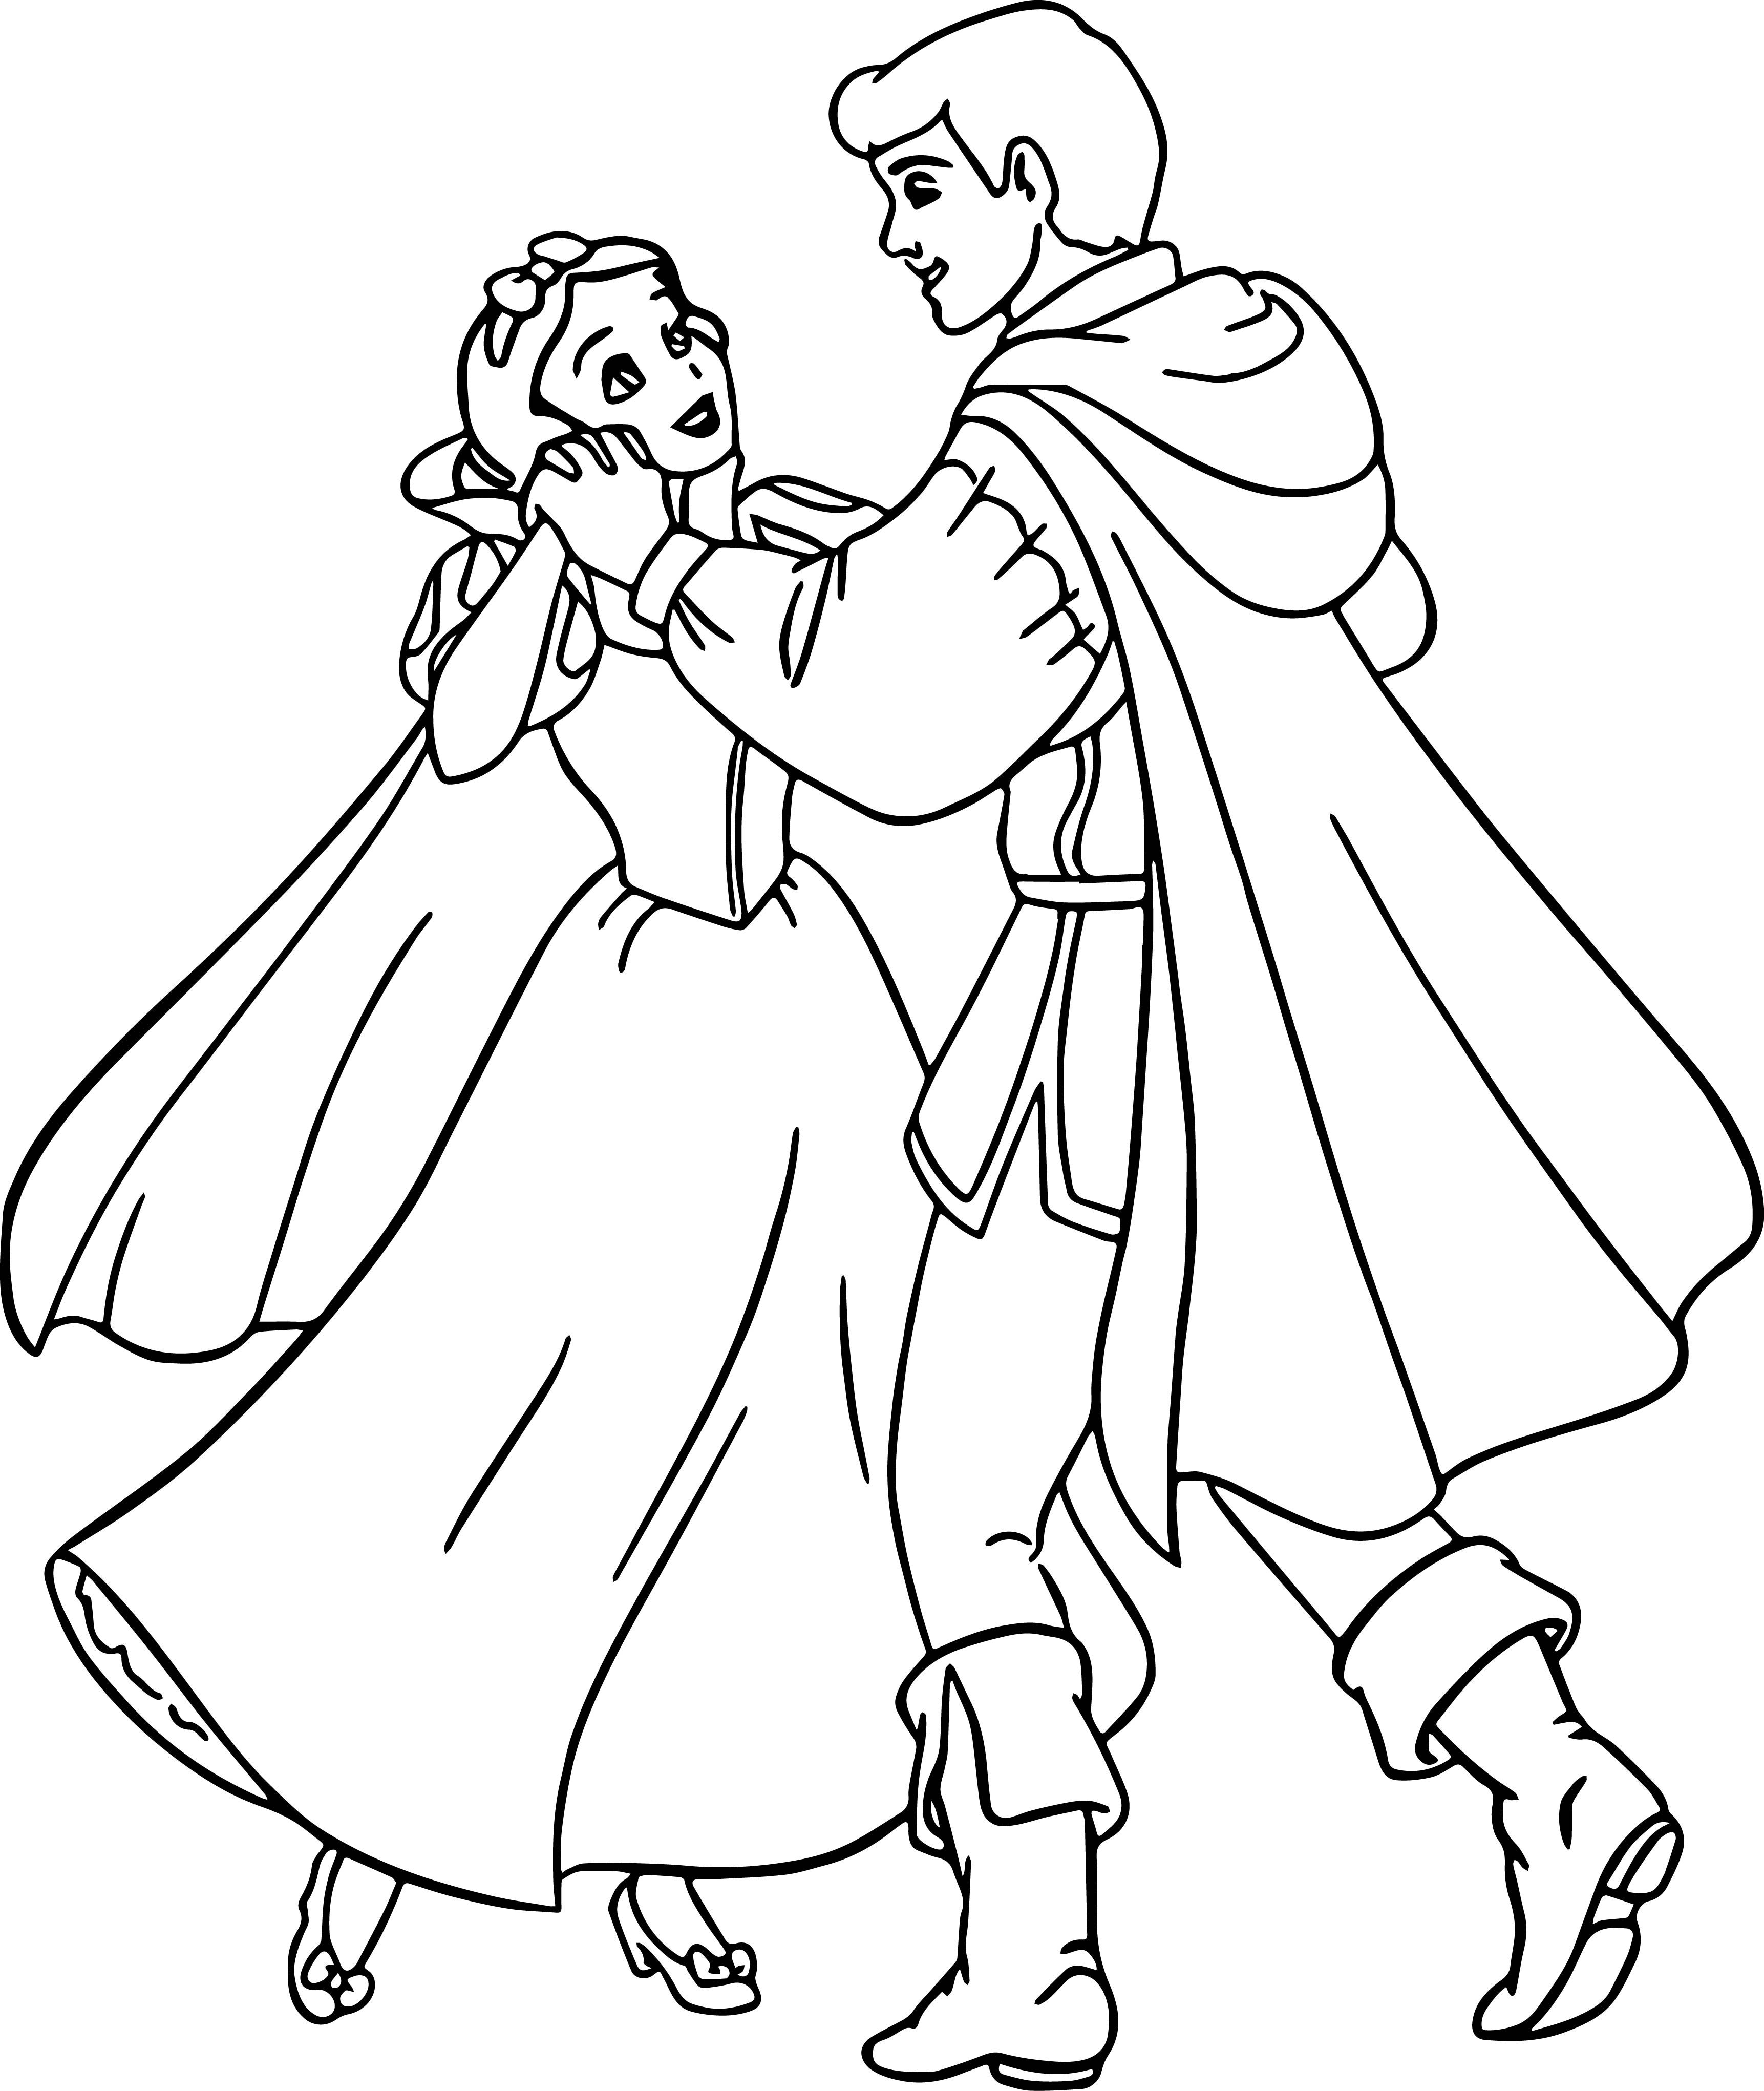 Snow White Coloring Pages wecoloringpage Pinterest